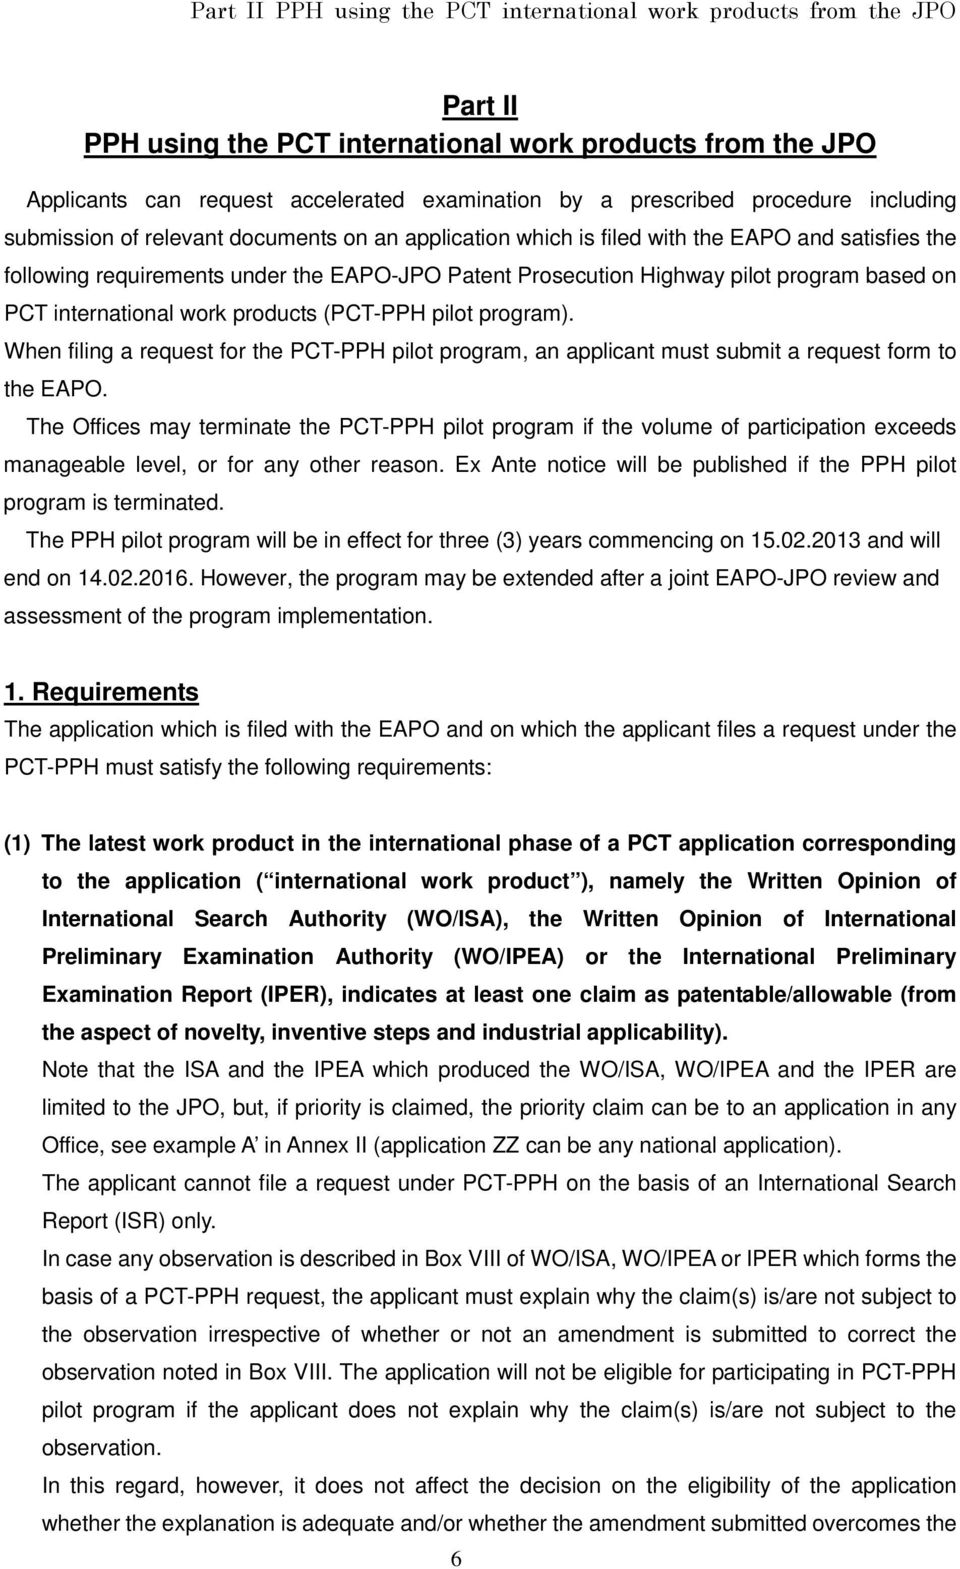 international work products (- pilot program). When filing a request for the - pilot program, an applicant must submit a request form to the EAPO.